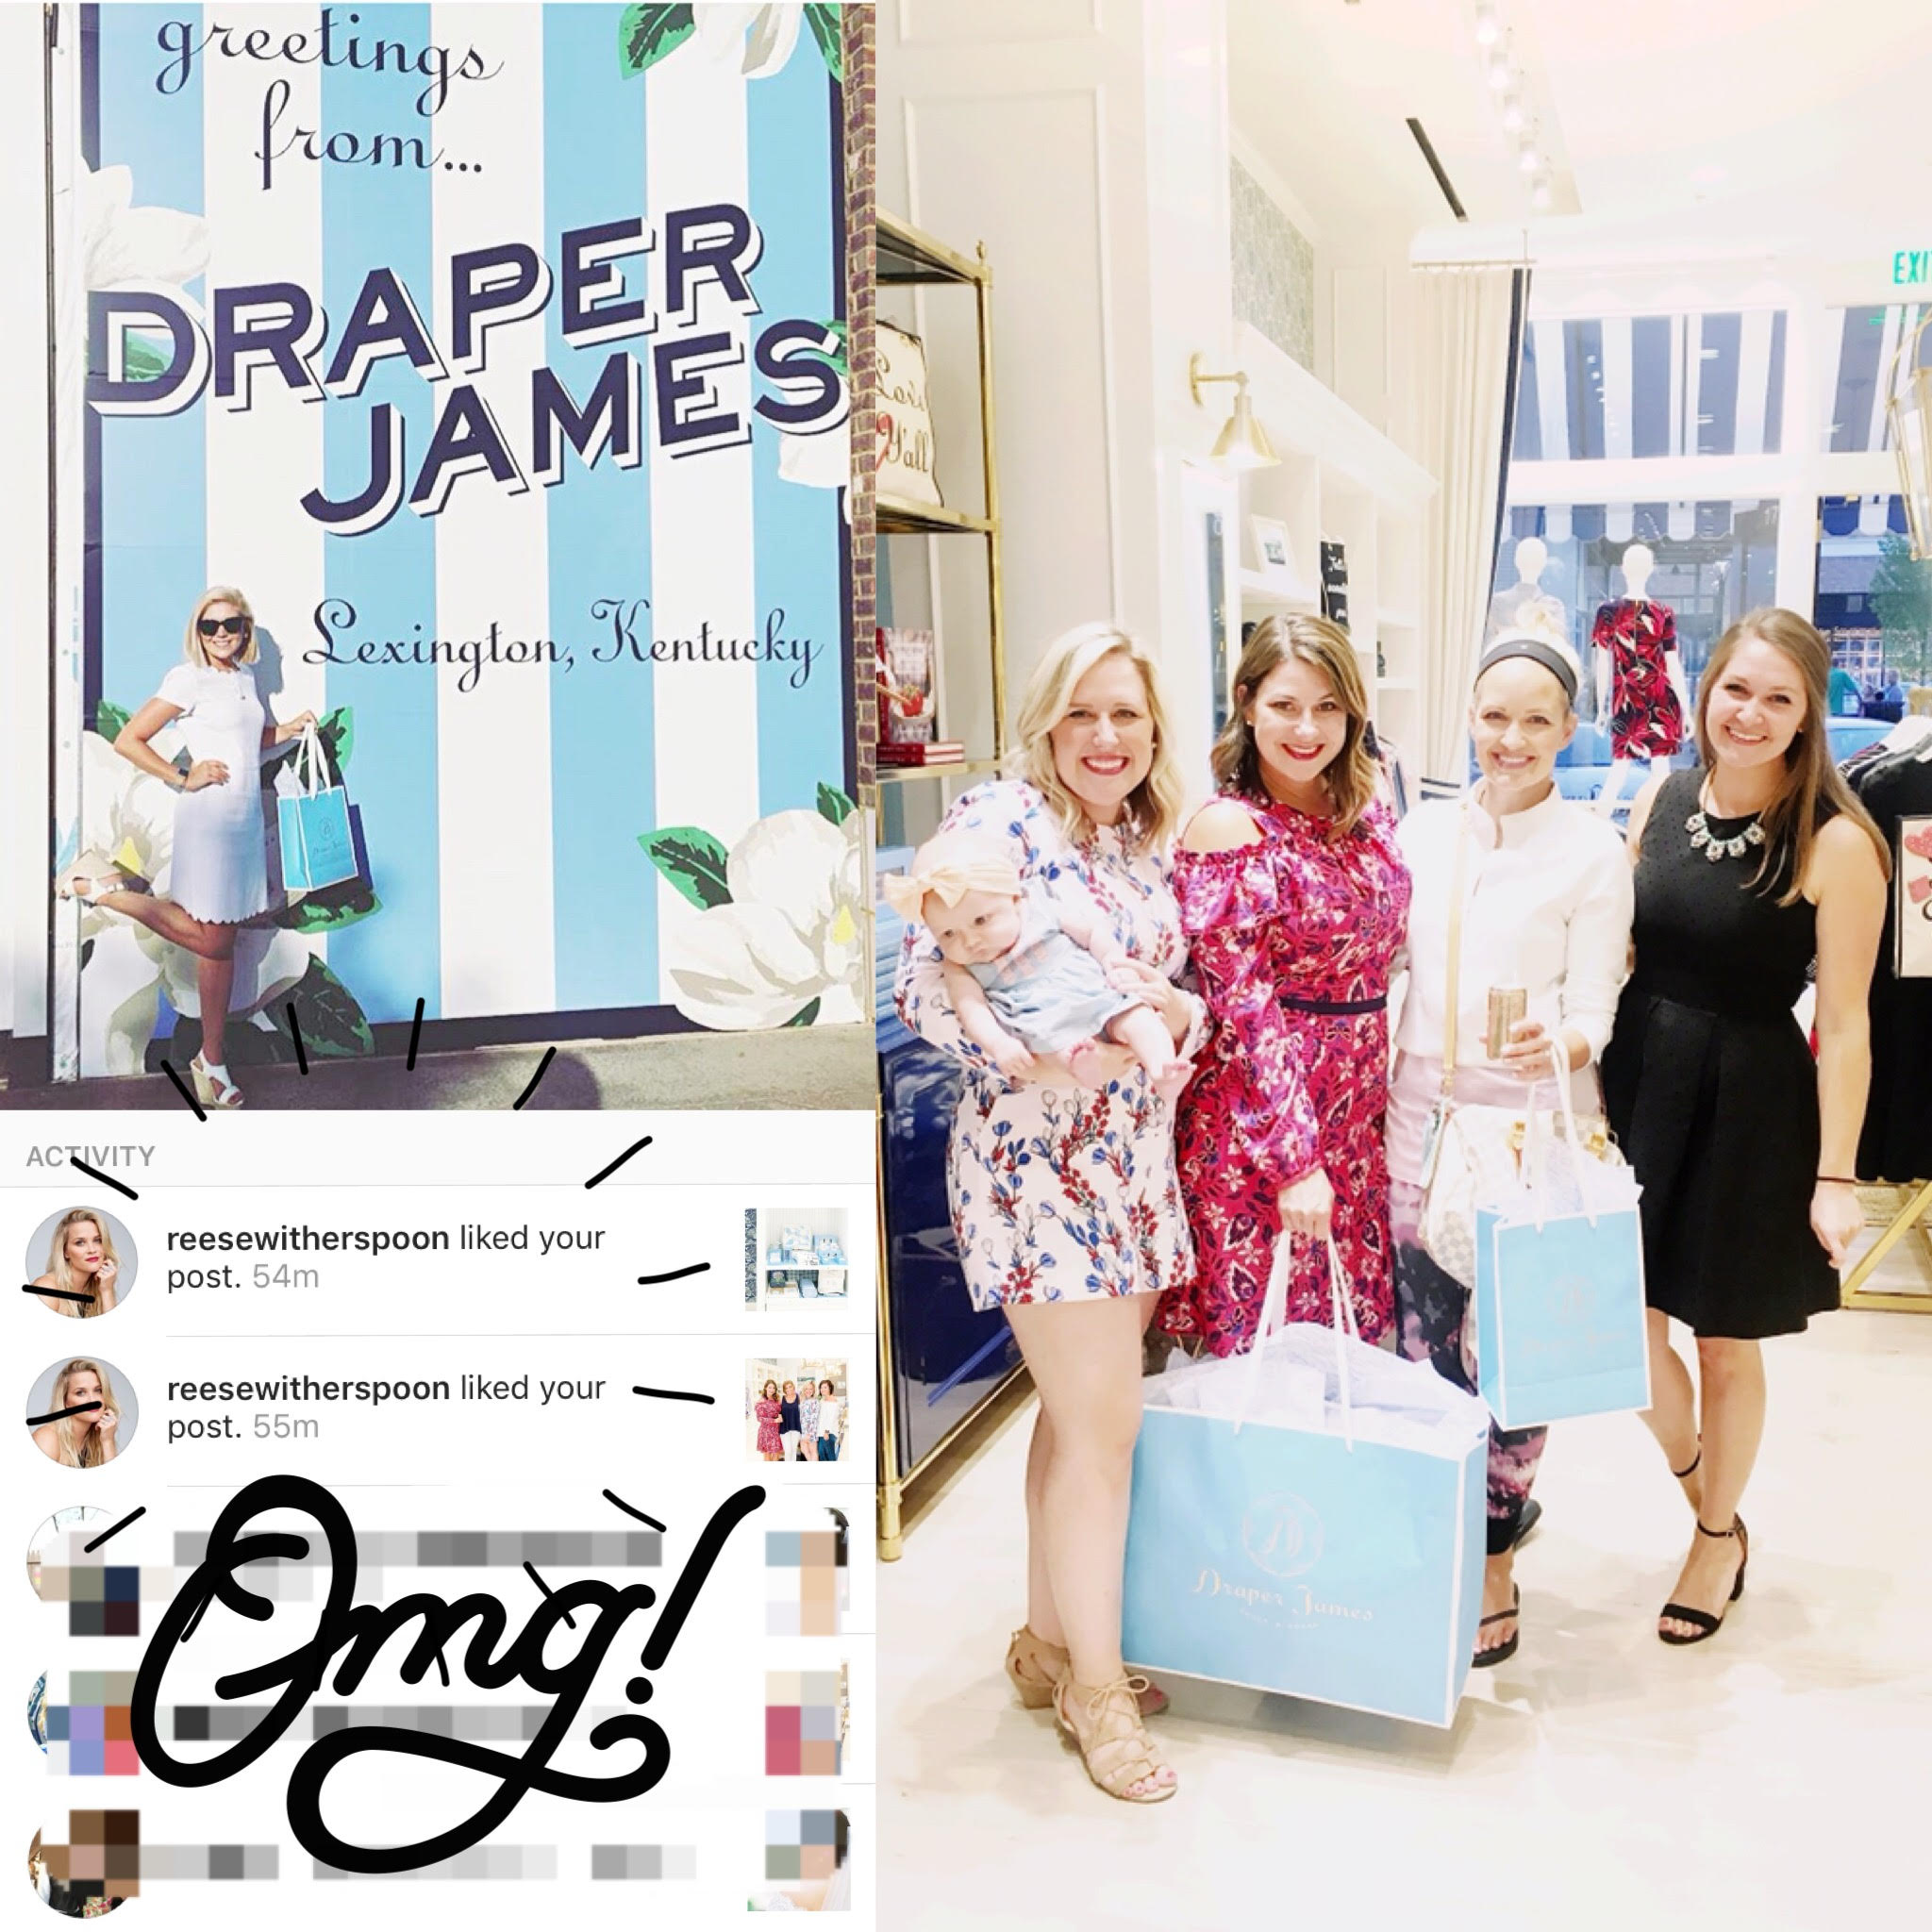 And a couple little iPhone snaps from the night! For those of you who don't know, Draper James was founded by Reese Witherspoon.. hence why we adore it so much. We FREAKED THE FREAK OUT when she liked our posts on Instagram about the event. #FANGIRLSOHARD